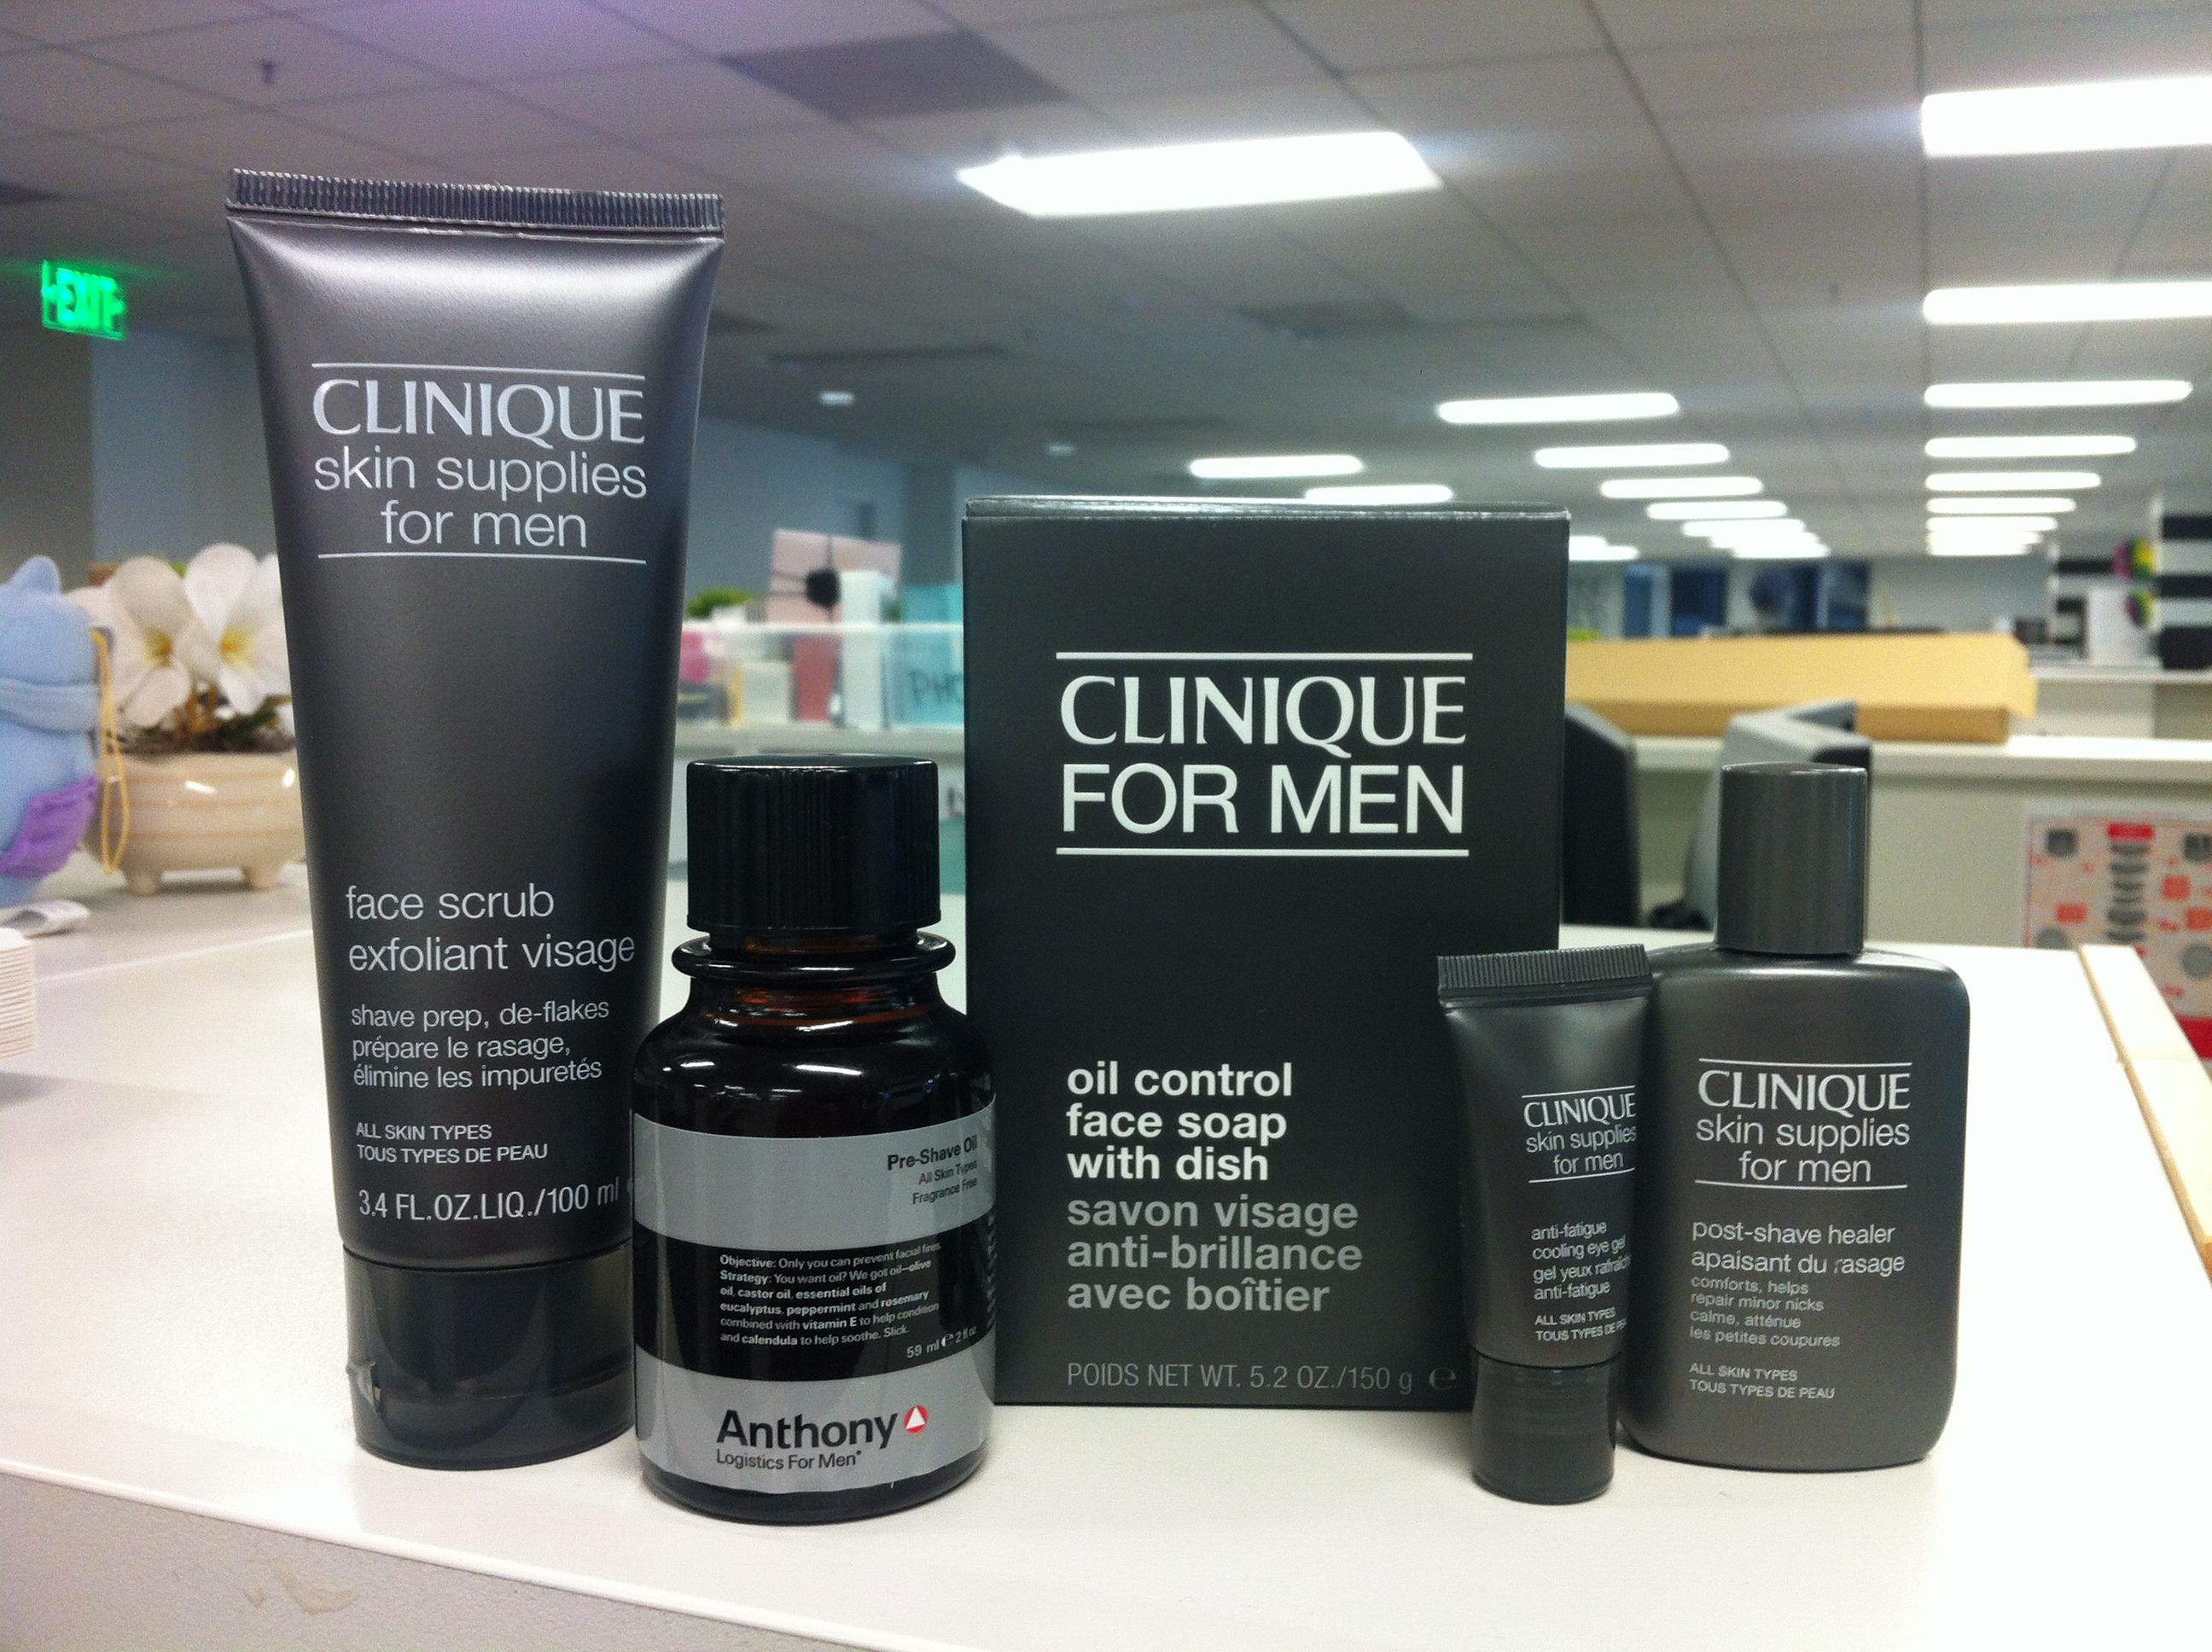 Hot From Sephora Hq Just Got These Clinique Products And Can T Wait To Try Them Plus A Fancy Shave Oil From Anthonylo Clinique For Men Shaving Oil Sephora